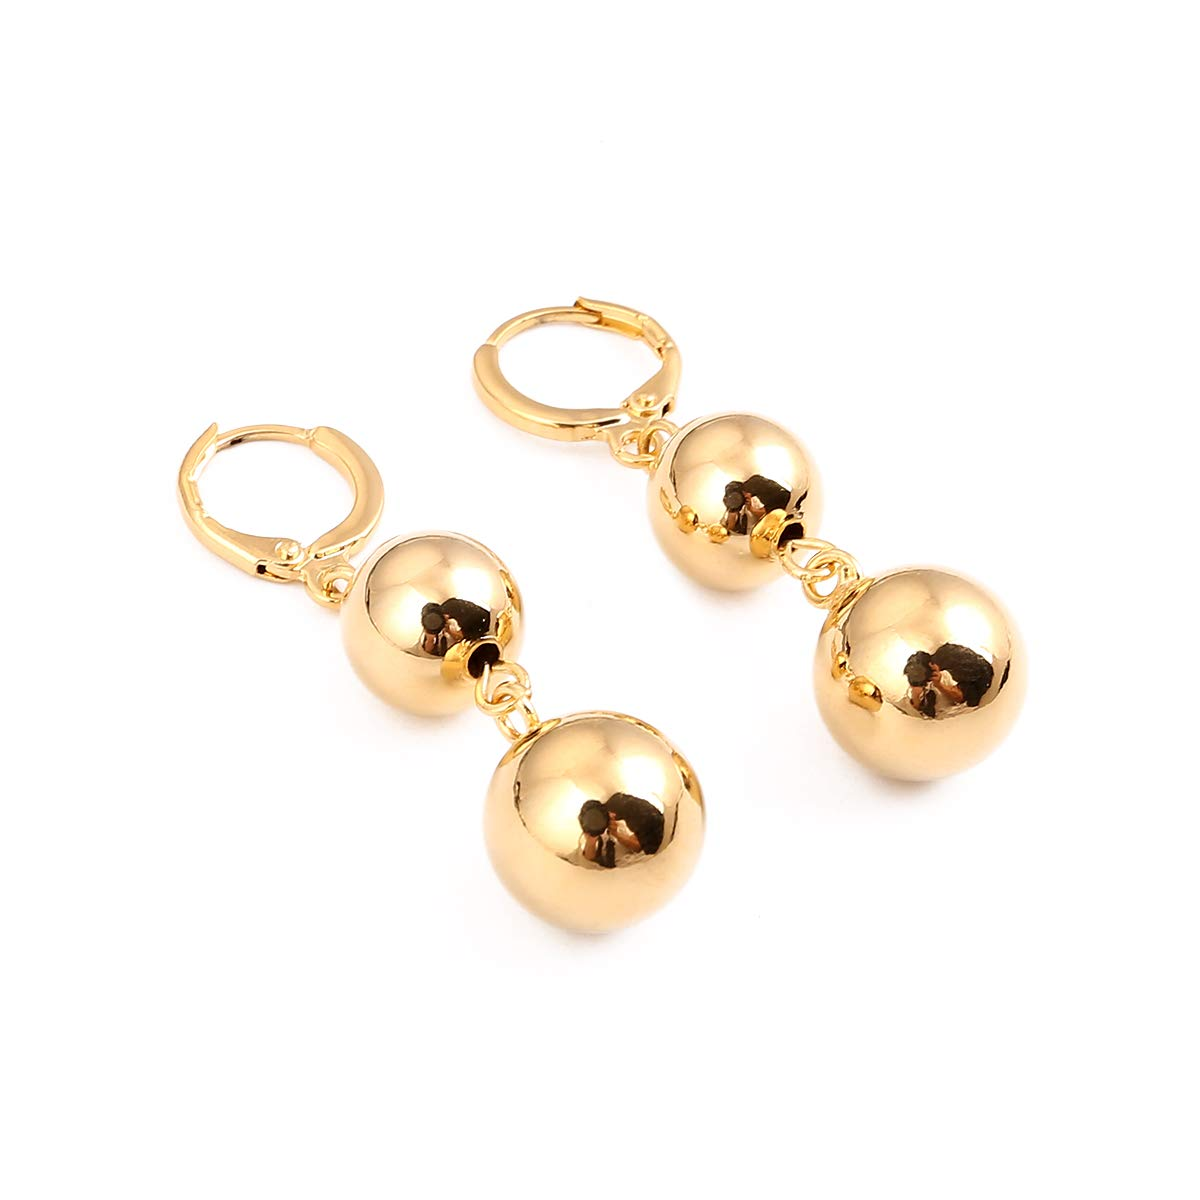 CB Gold Jewelry Round Ball Beads Earrings Cheap Wedding Engagement Fashion Statement Earrings G95